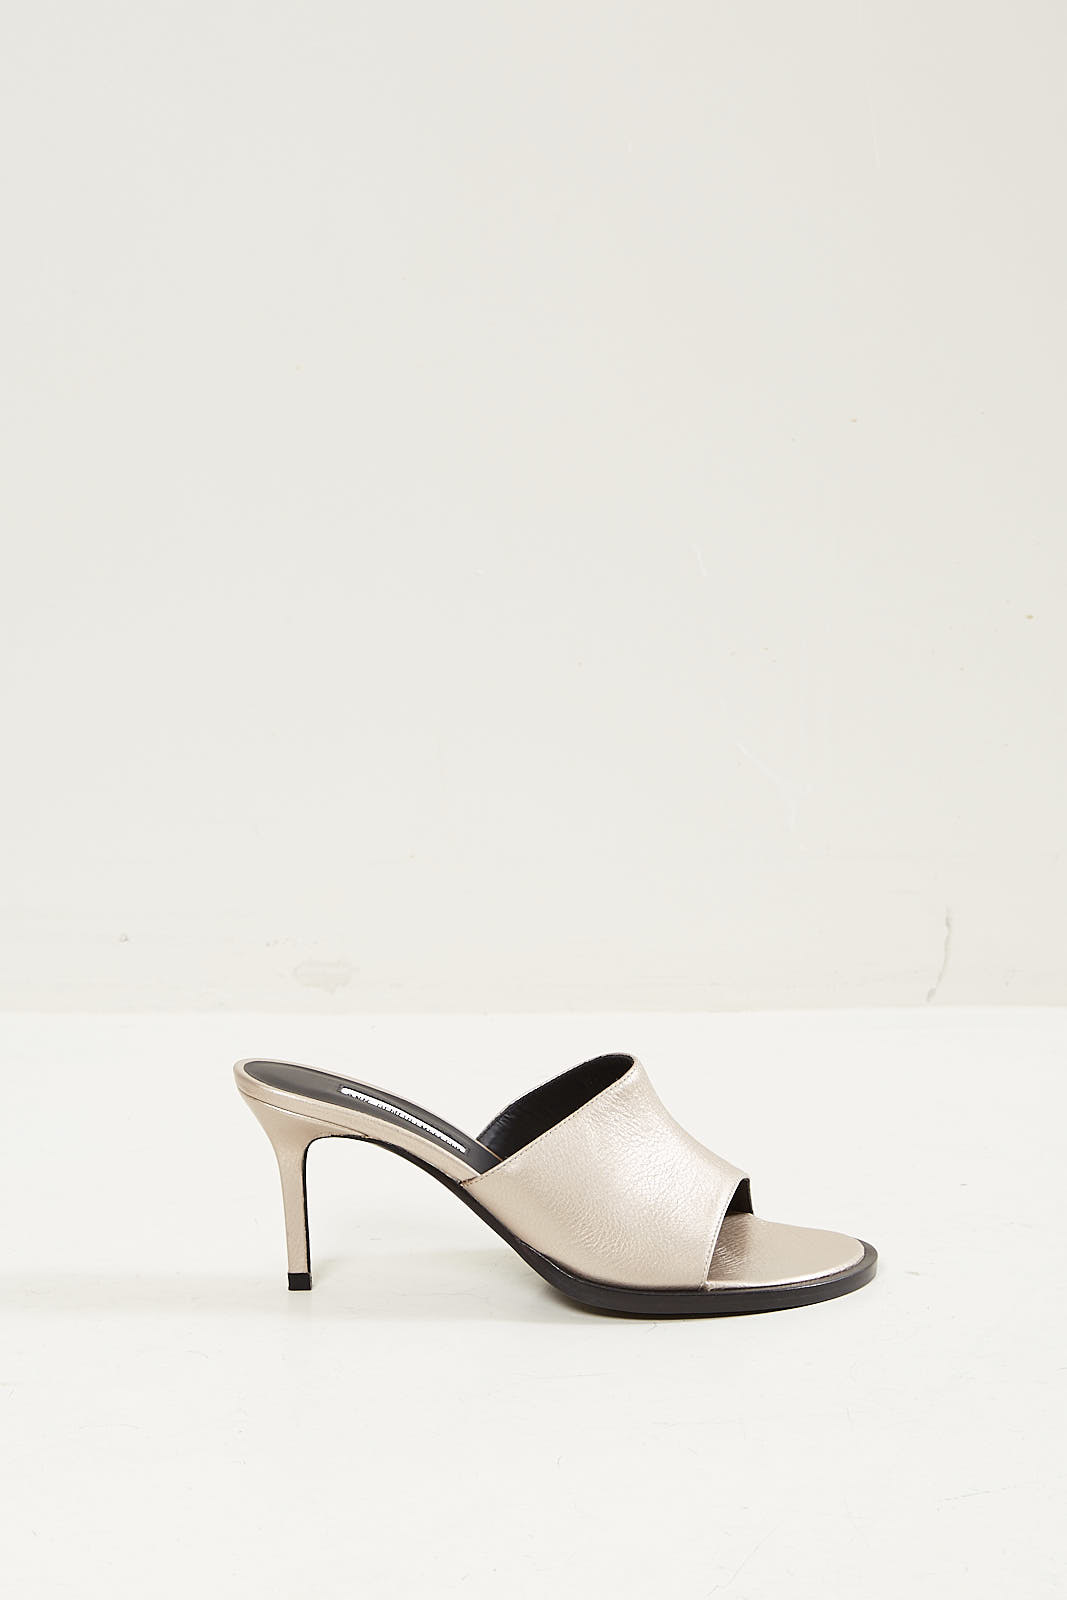 Ann Demeulemeester - 100% leather sandals